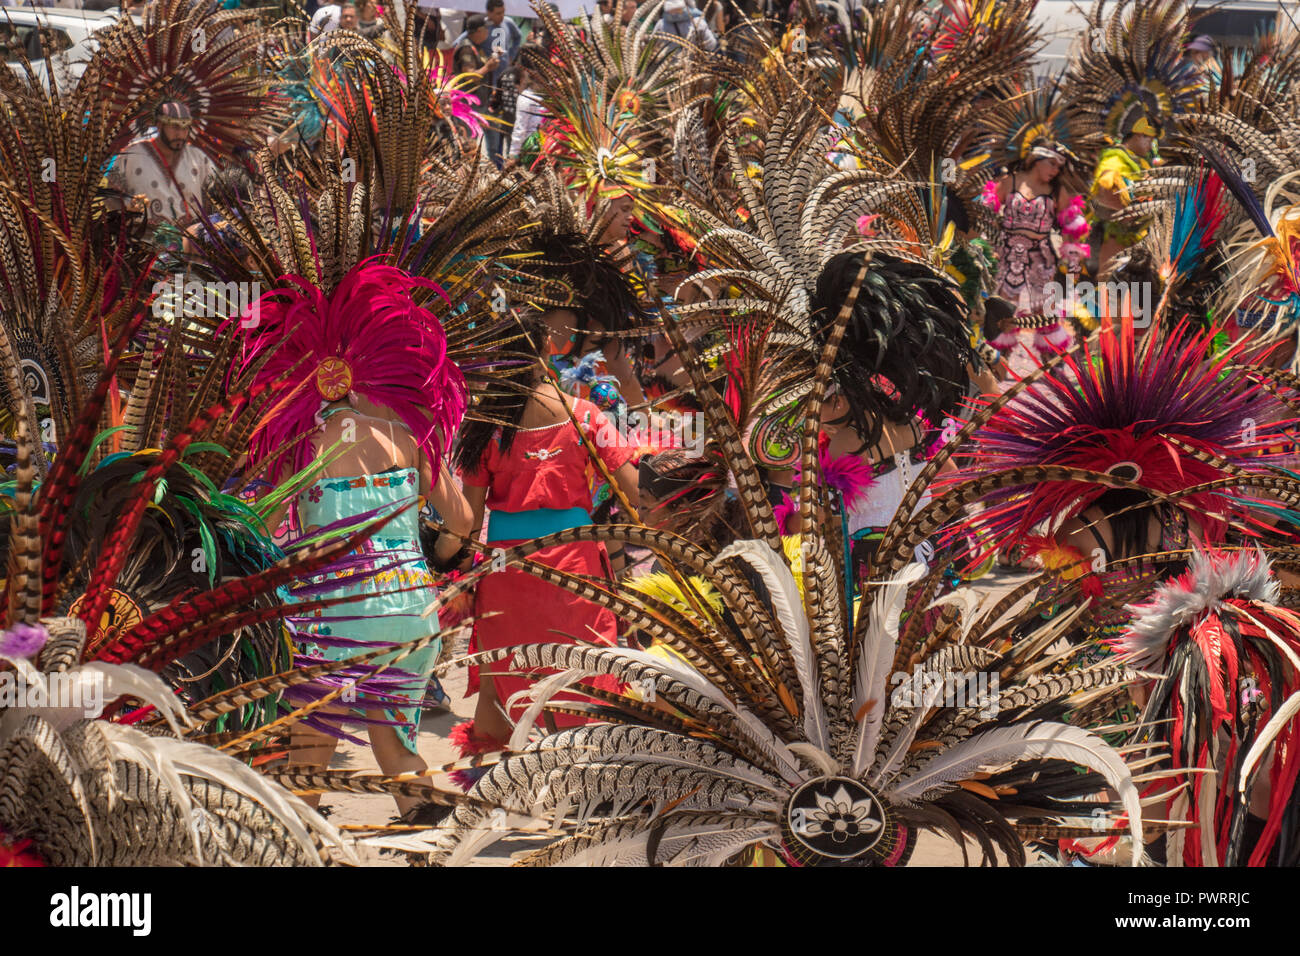 Multitude of indigenous plumes in parade and celebration to the virgin of zapopan in chapala - Stock Image